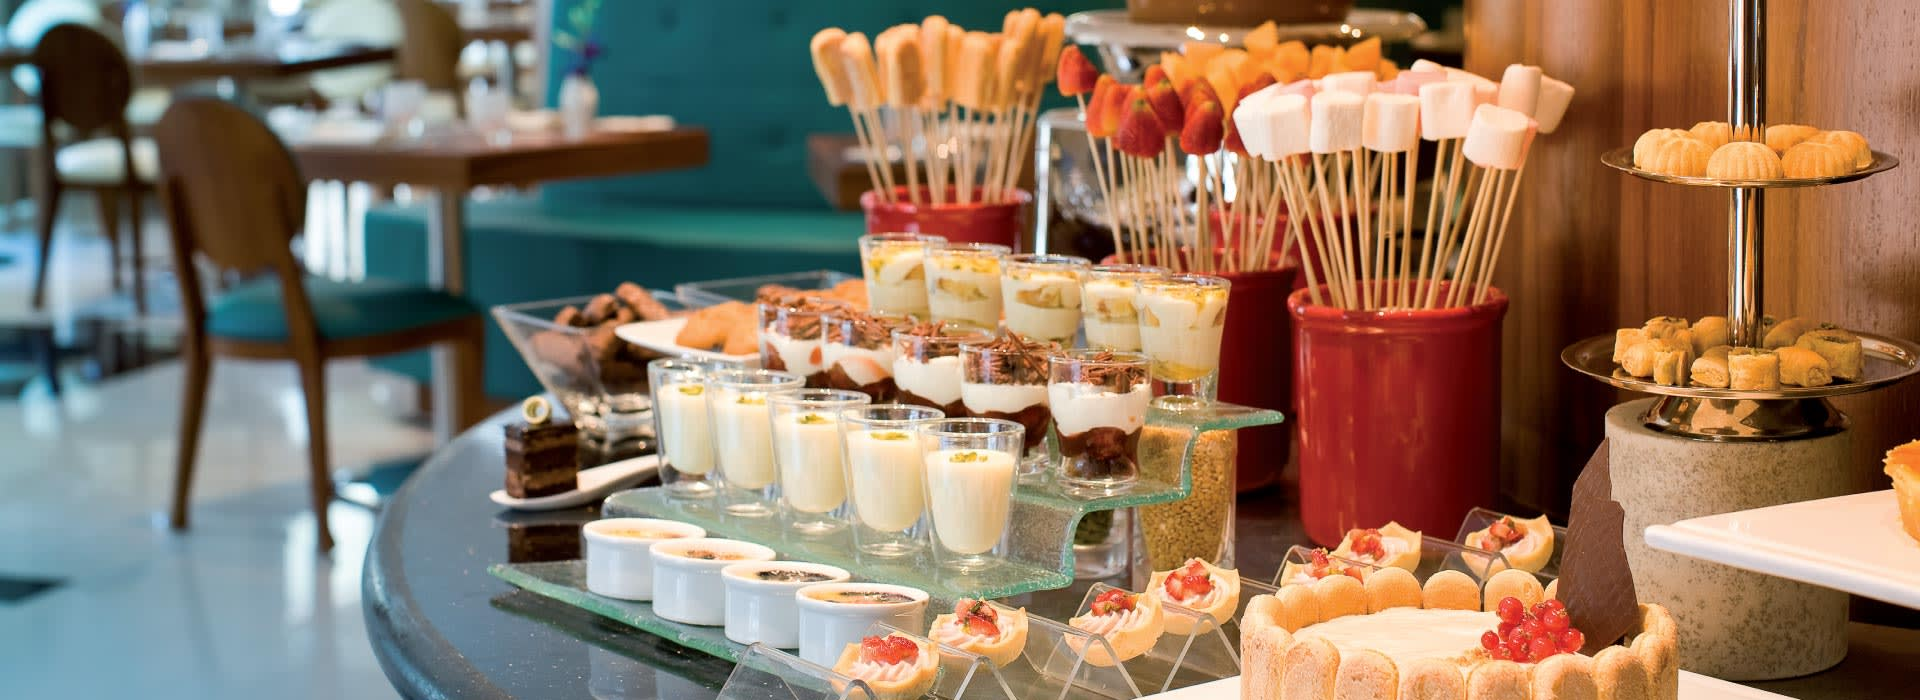 Desserts served at one of the  Restaurants in Deira